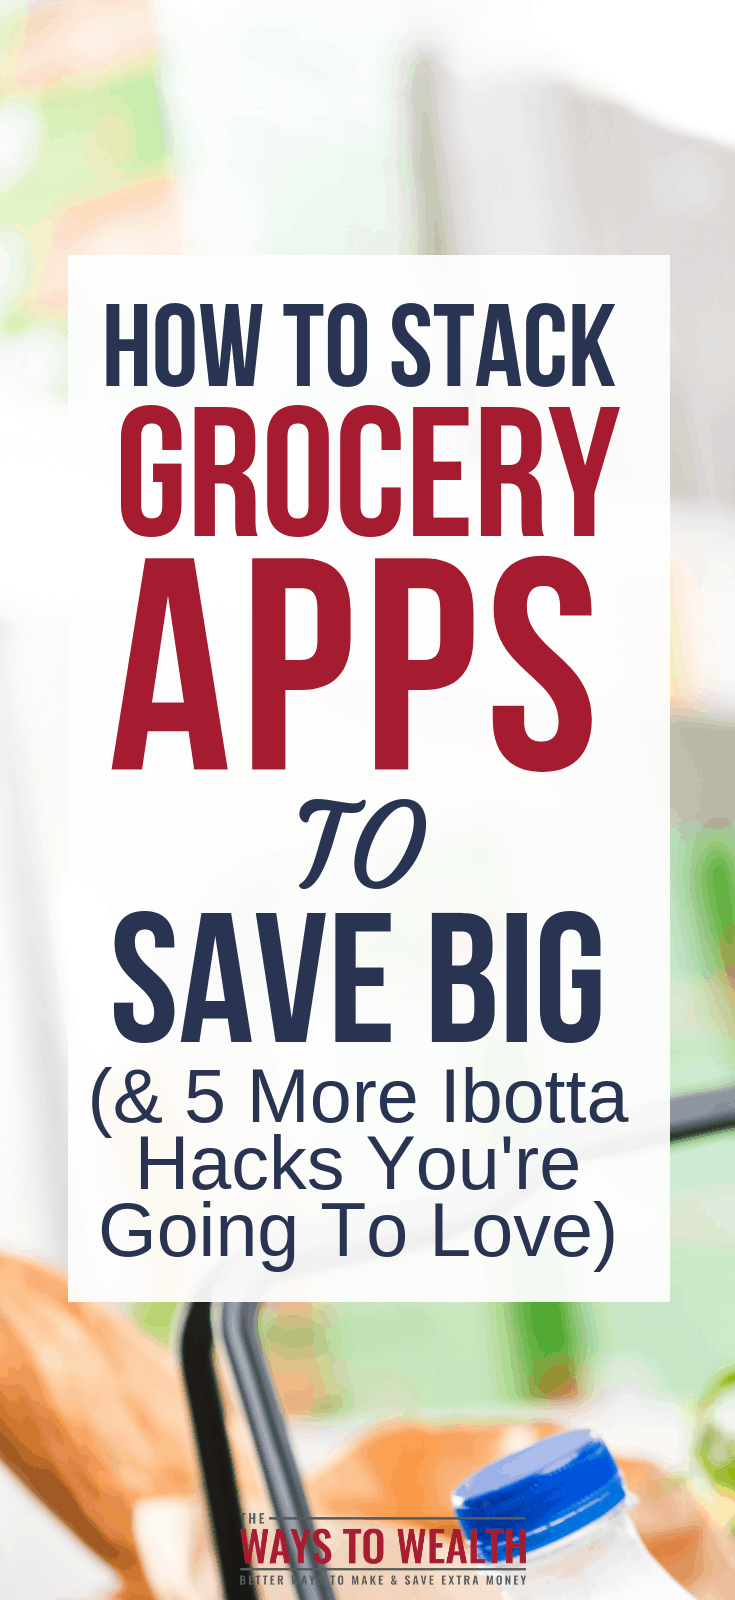 Discover how to use money saving grocery apps, like Ibotta, to reduce your food spending fast. Then, learn how to save even more by combining Ibotta with other popular money savings apps.